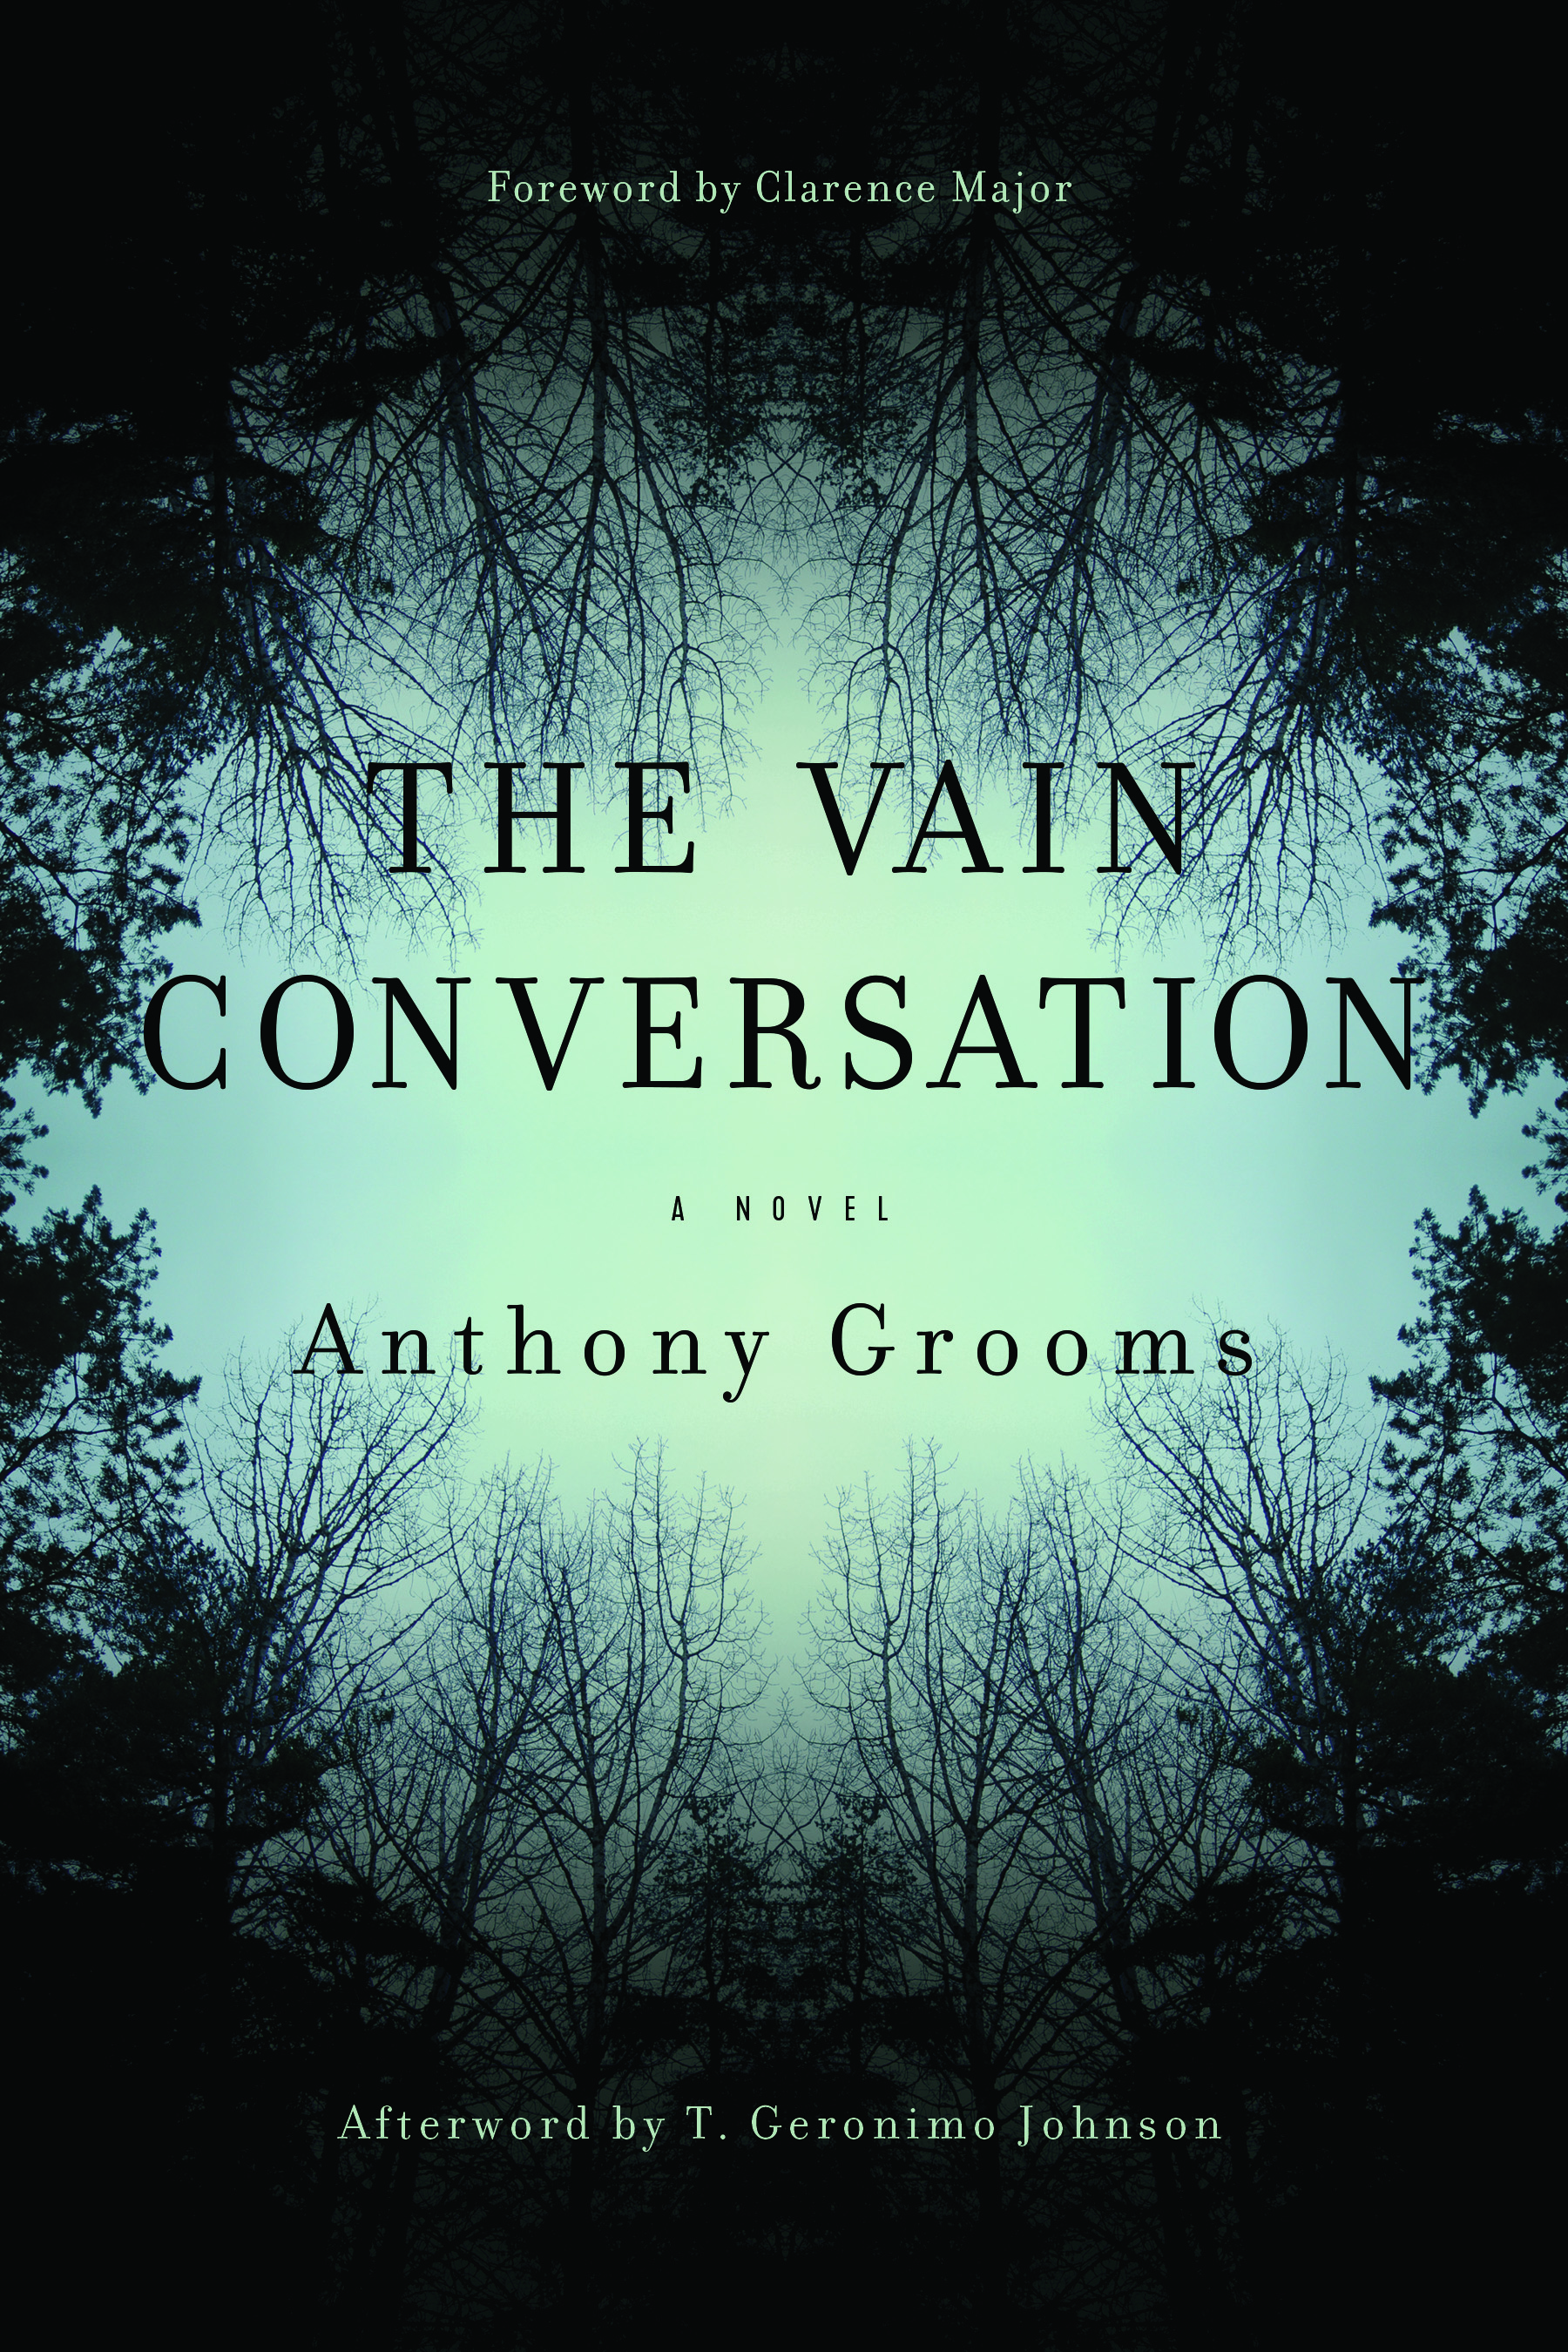 Anthony Grooms_The Vain Conversation_cover.jpeg